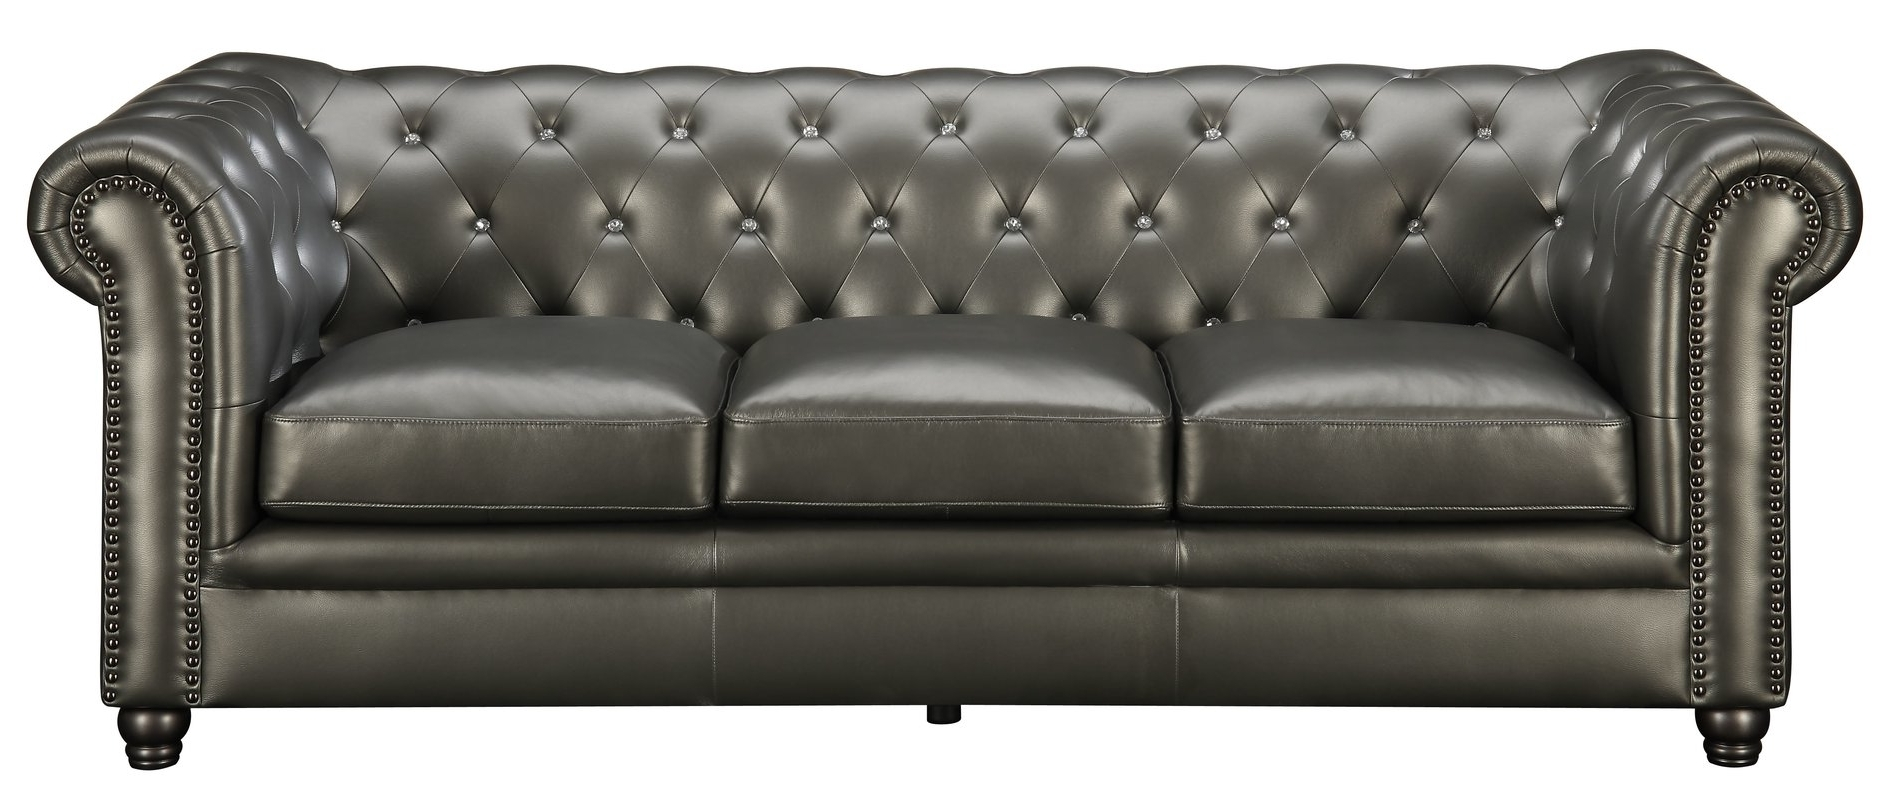 Fashionable Chesterfield Sofas With Darby Home Co Vanallen Leather Chesterfield Sofa & Reviews (View 12 of 20)